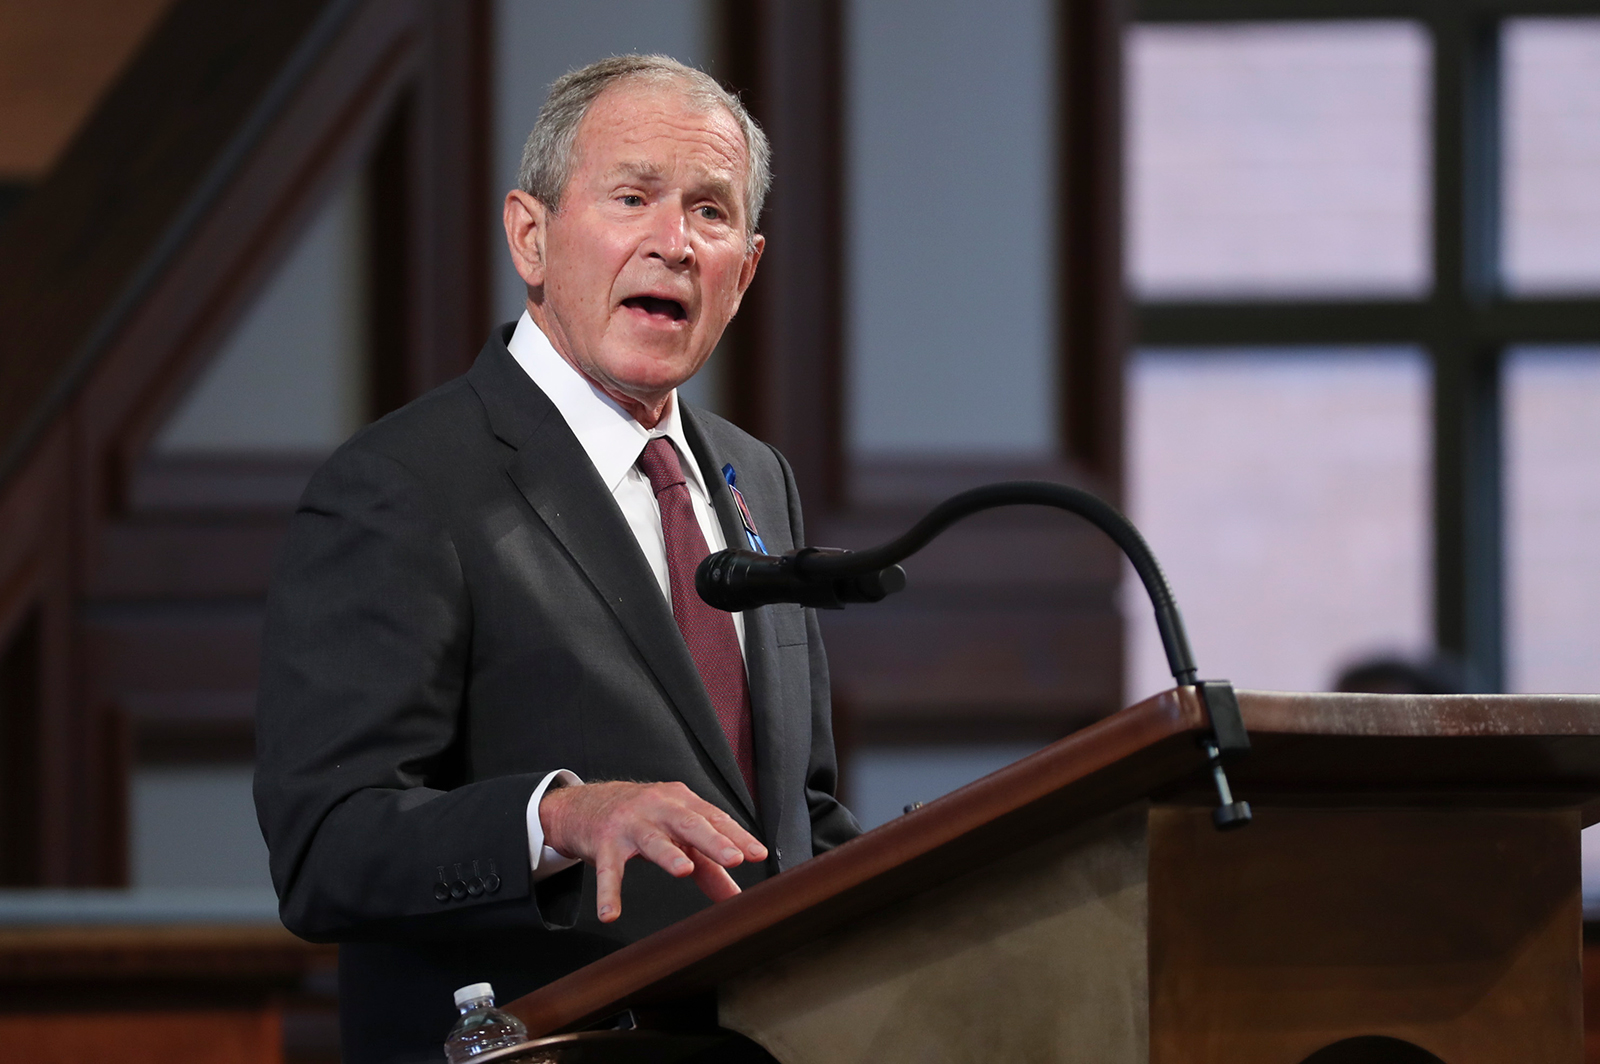 Former President George W. Bush speaks during the funeral service of the late Rep. John Lewis at Ebenezer Baptist Church on July 30, in Atlanta, Georgia.